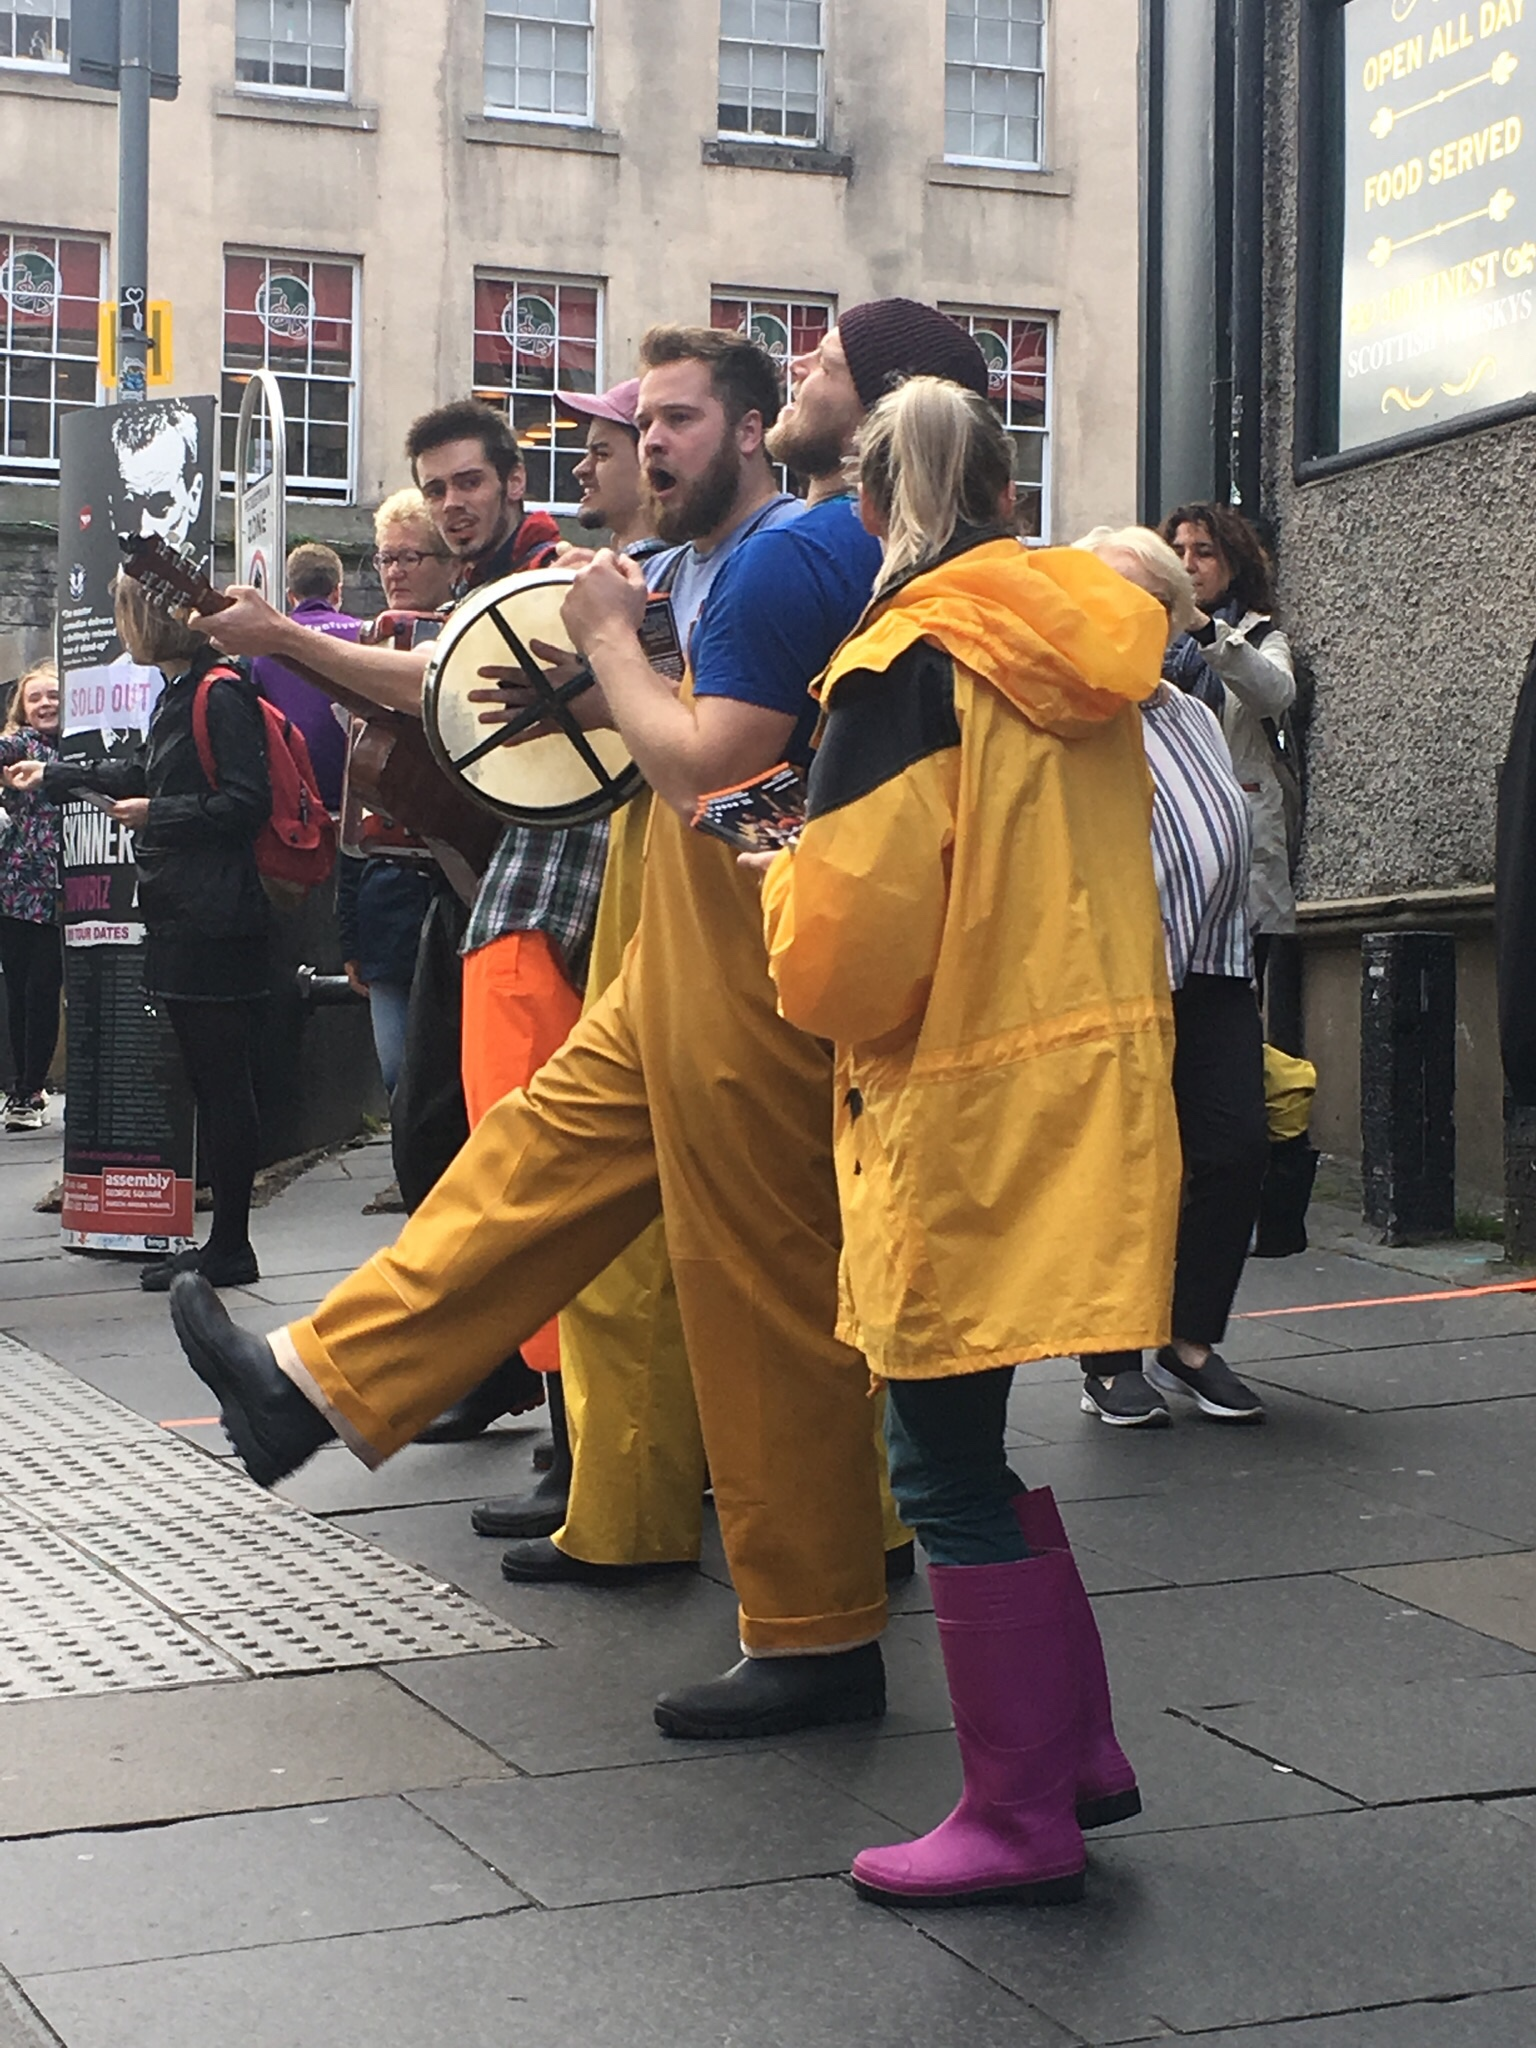 Street performers at the Fringe Festival - this group was singing seafaring songs.